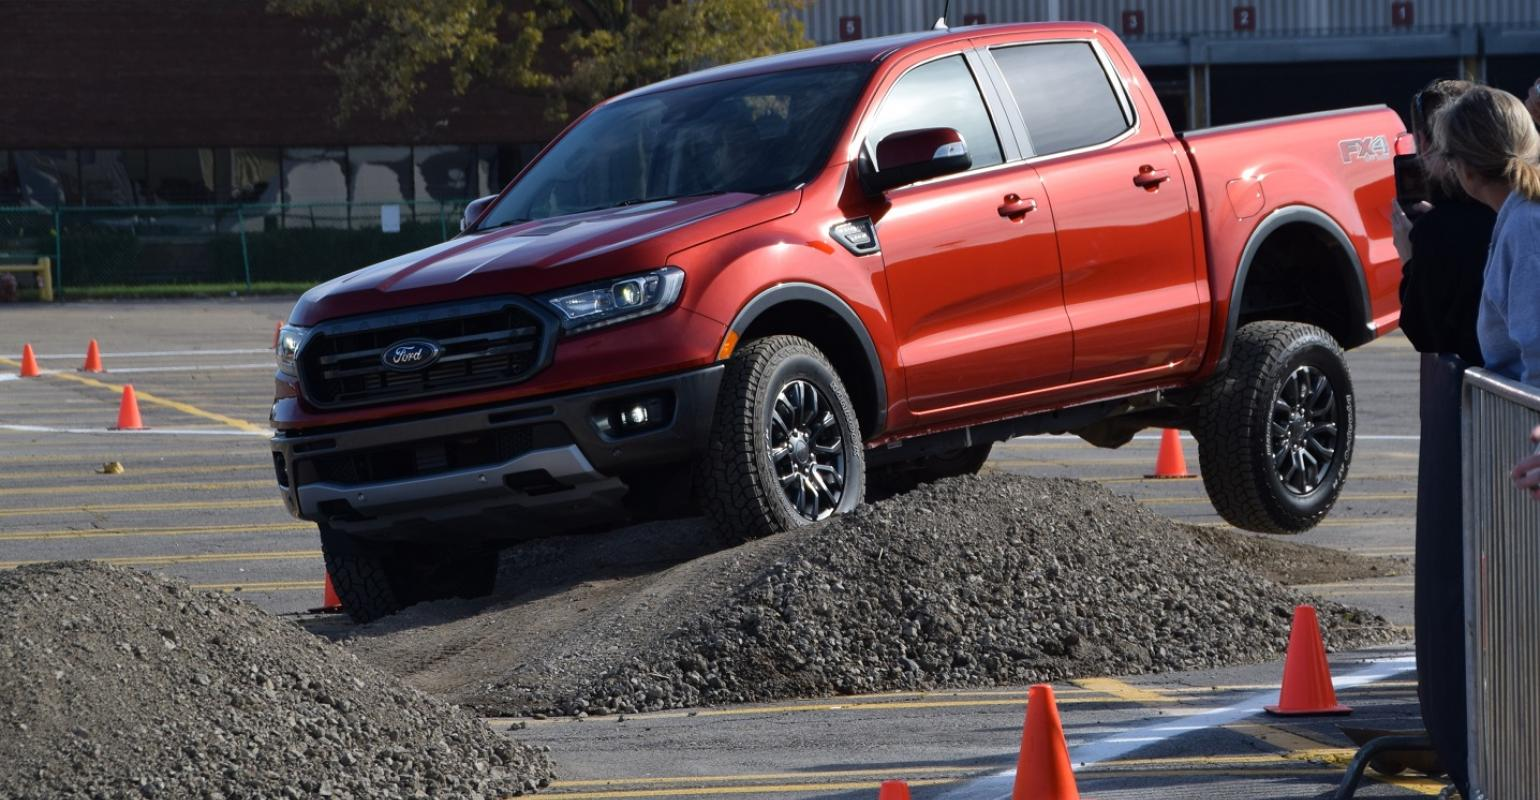 2019 ford ranger put through paces outside fords michigan assembly plant